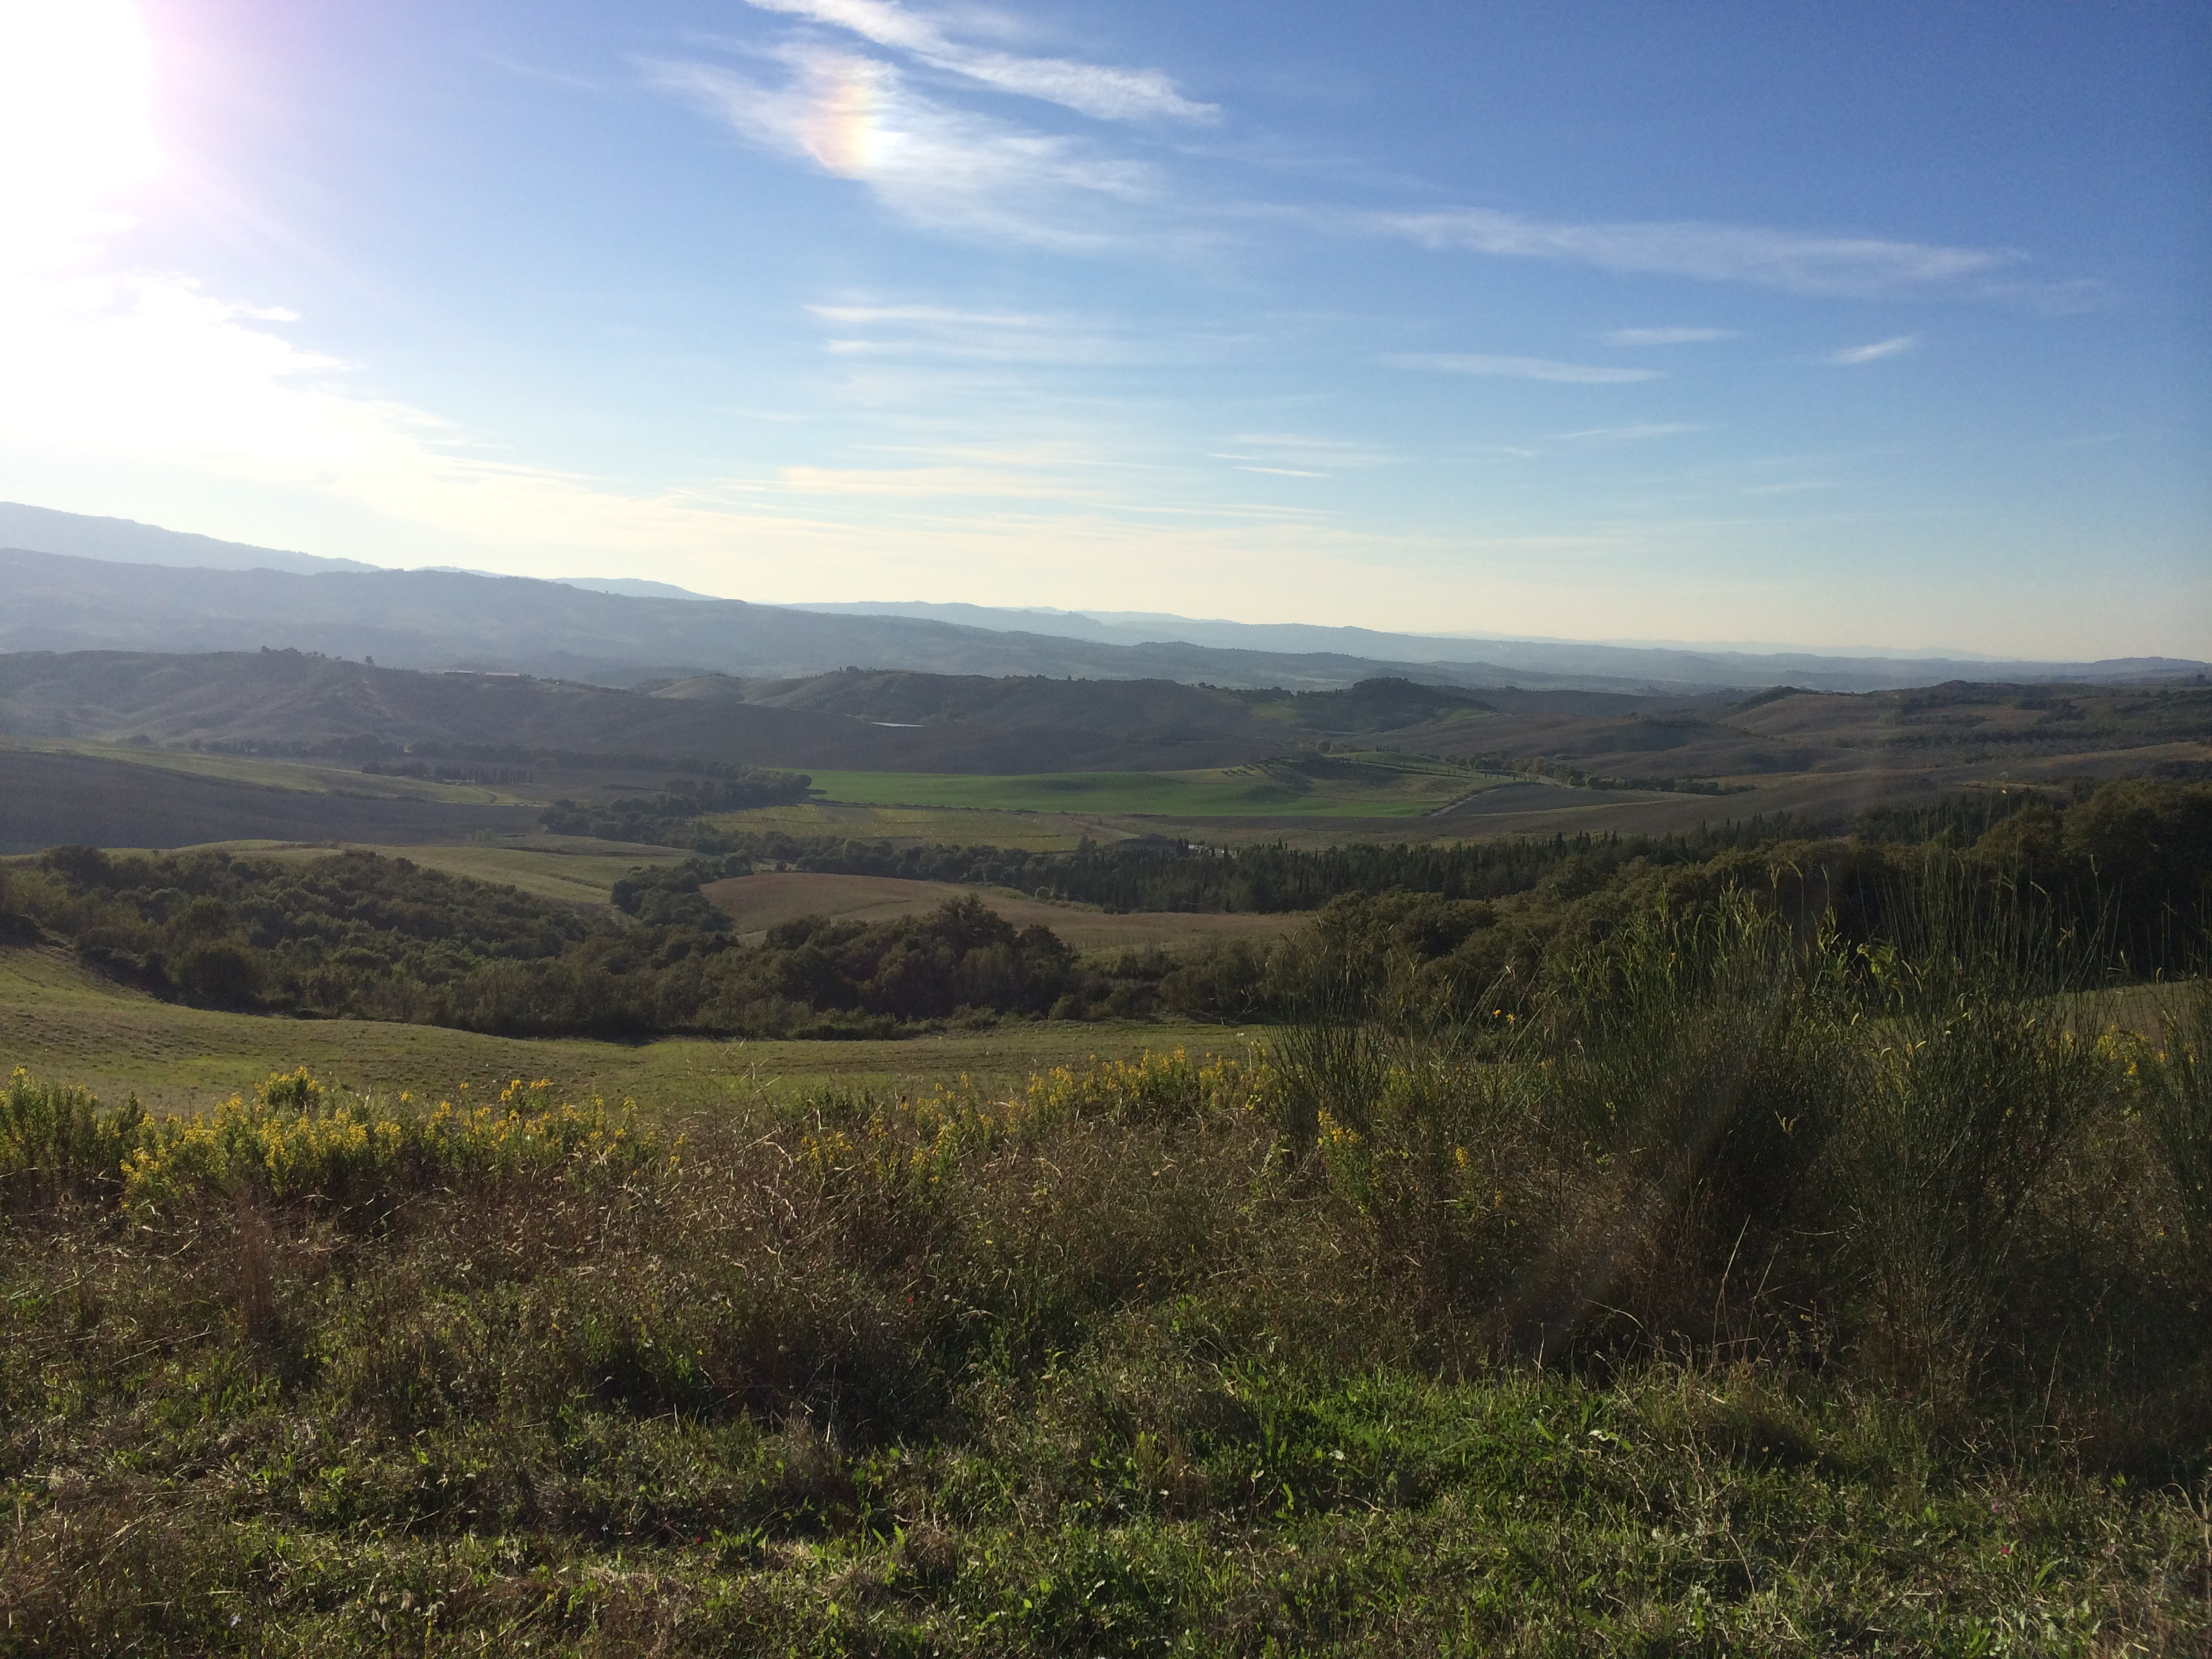 walking through the val d'orcia